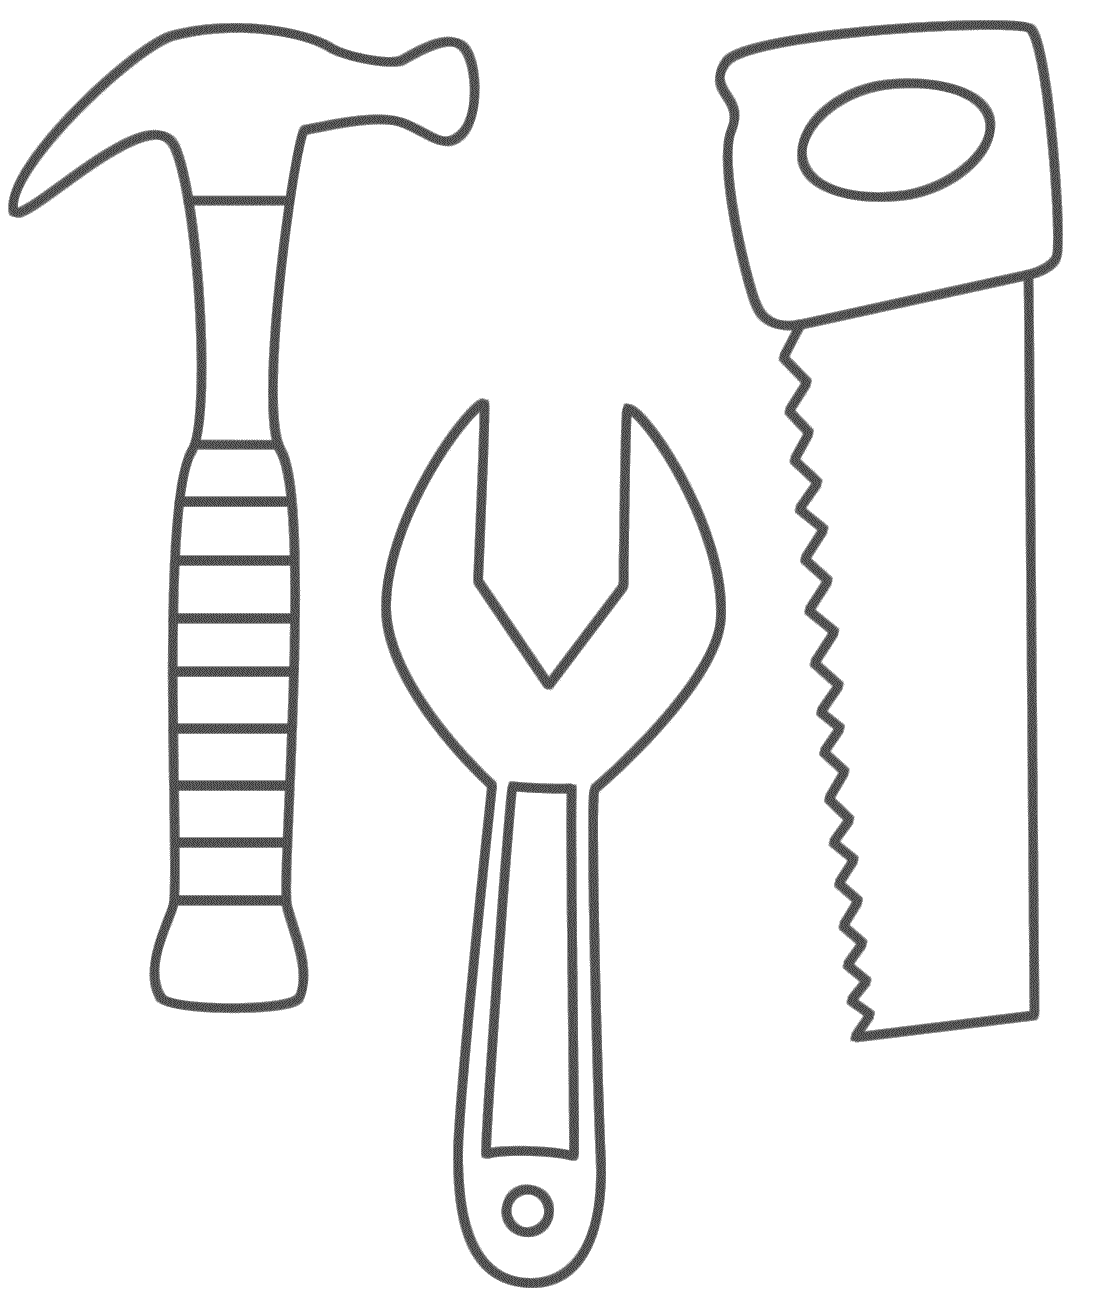 Uncategorized Construction Worker Coloring Pages coloring page preschool building pinterest craft sunday hammer saw and wrench pages use to make construction worker tool belt